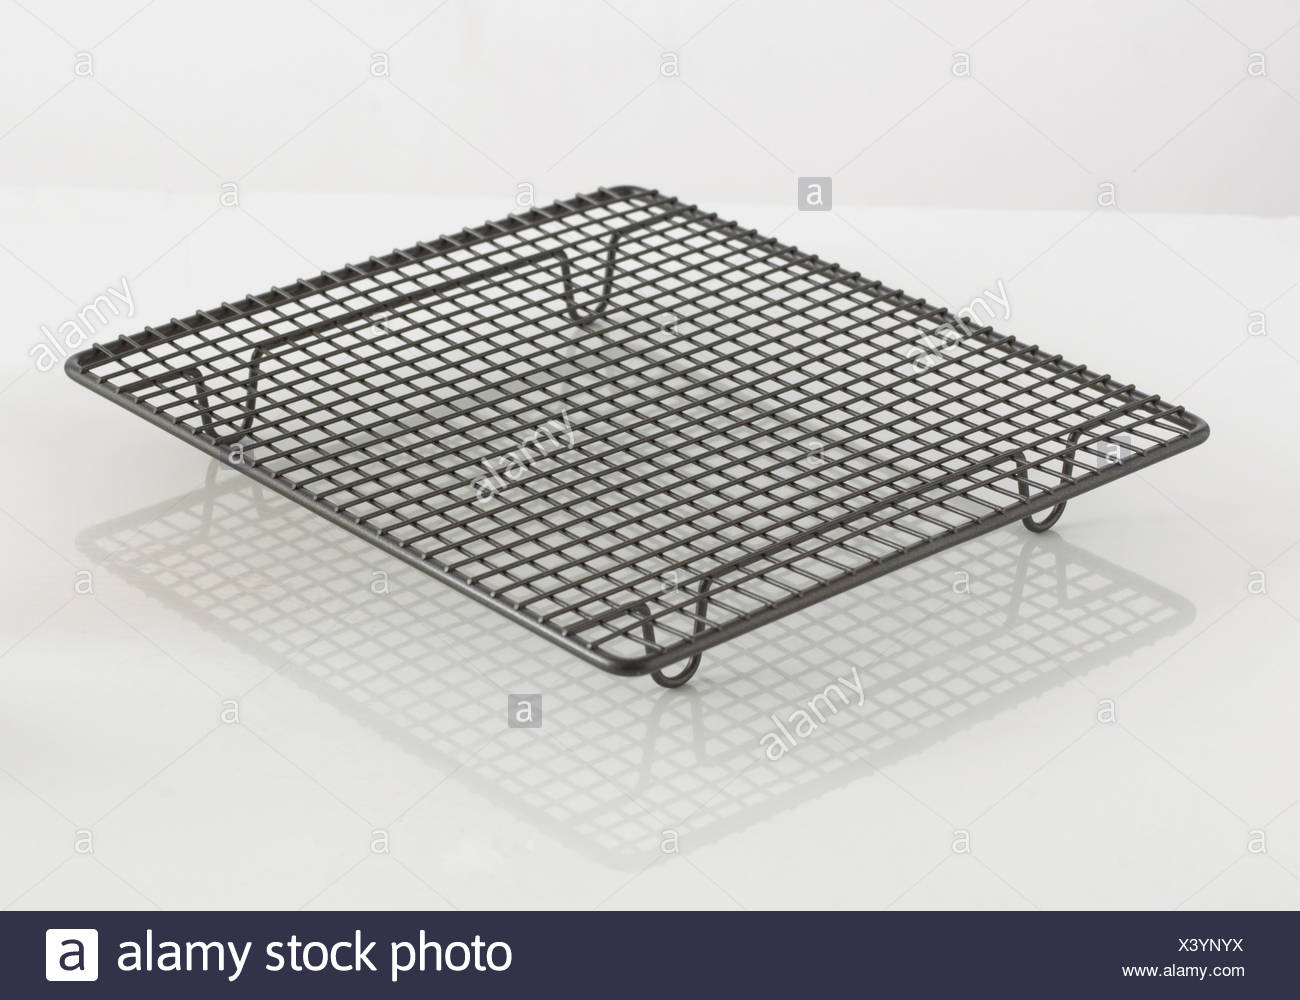 https www alamy com wire cooling rack for baking on white background image277819806 html